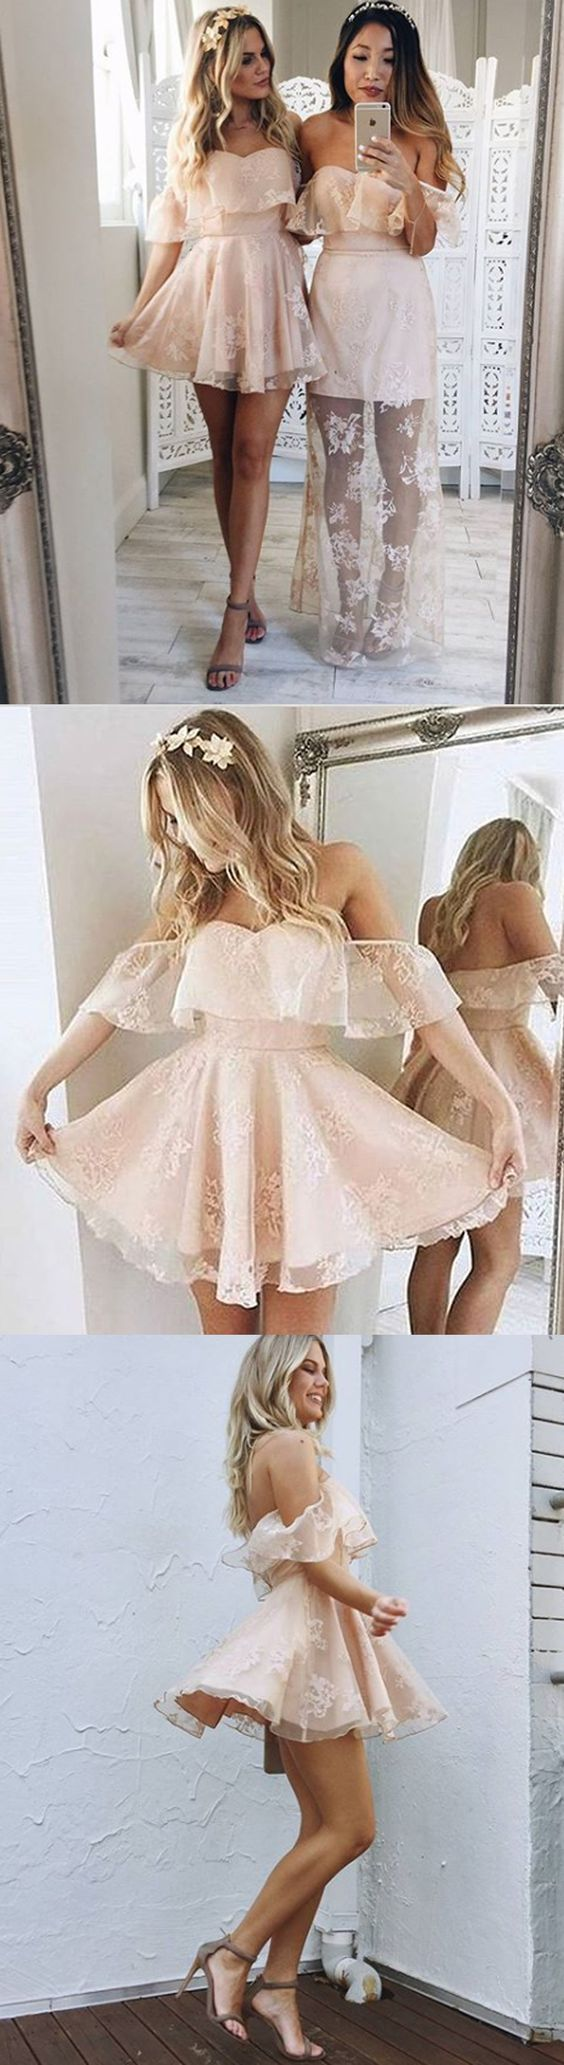 Short Pearl Pink Lace Homecoming Dress, Off-the-Shoulder pearl pink prom dresses, Cute Lace Party Dresses for girls